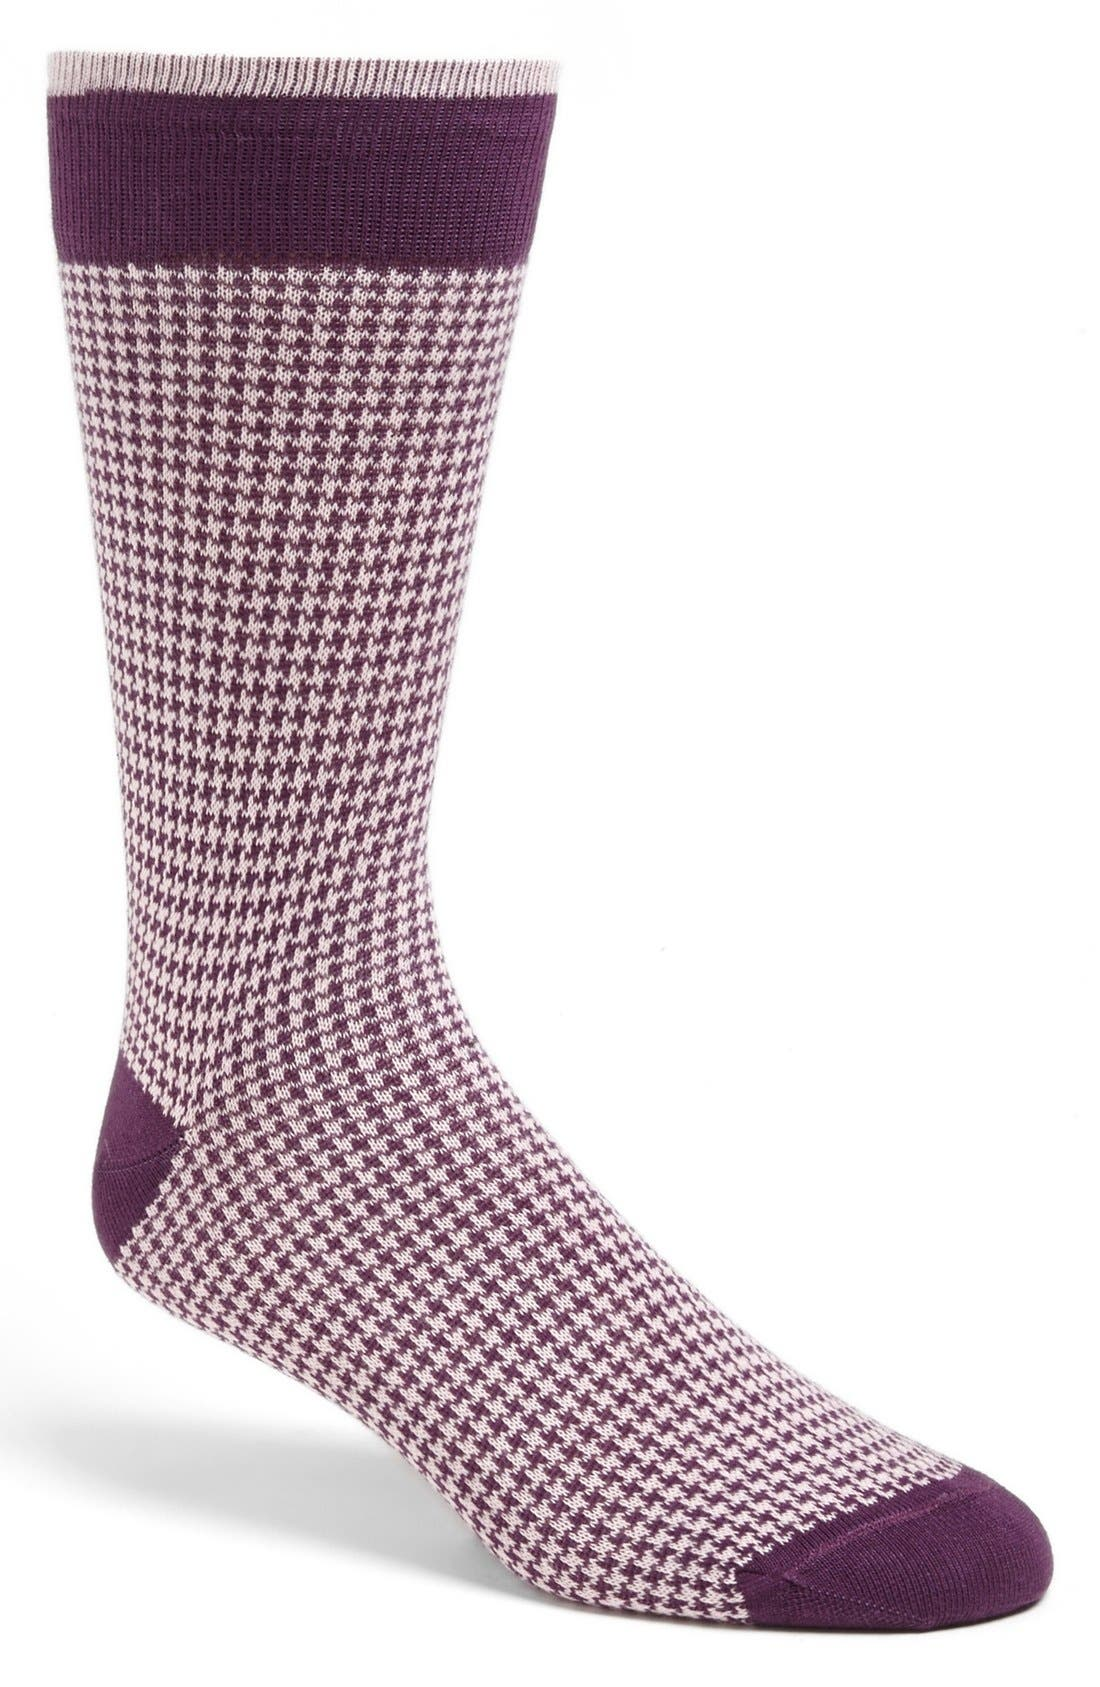 Alternate Image 1 Selected - Lorenzo Uomo Houndstooth Socks